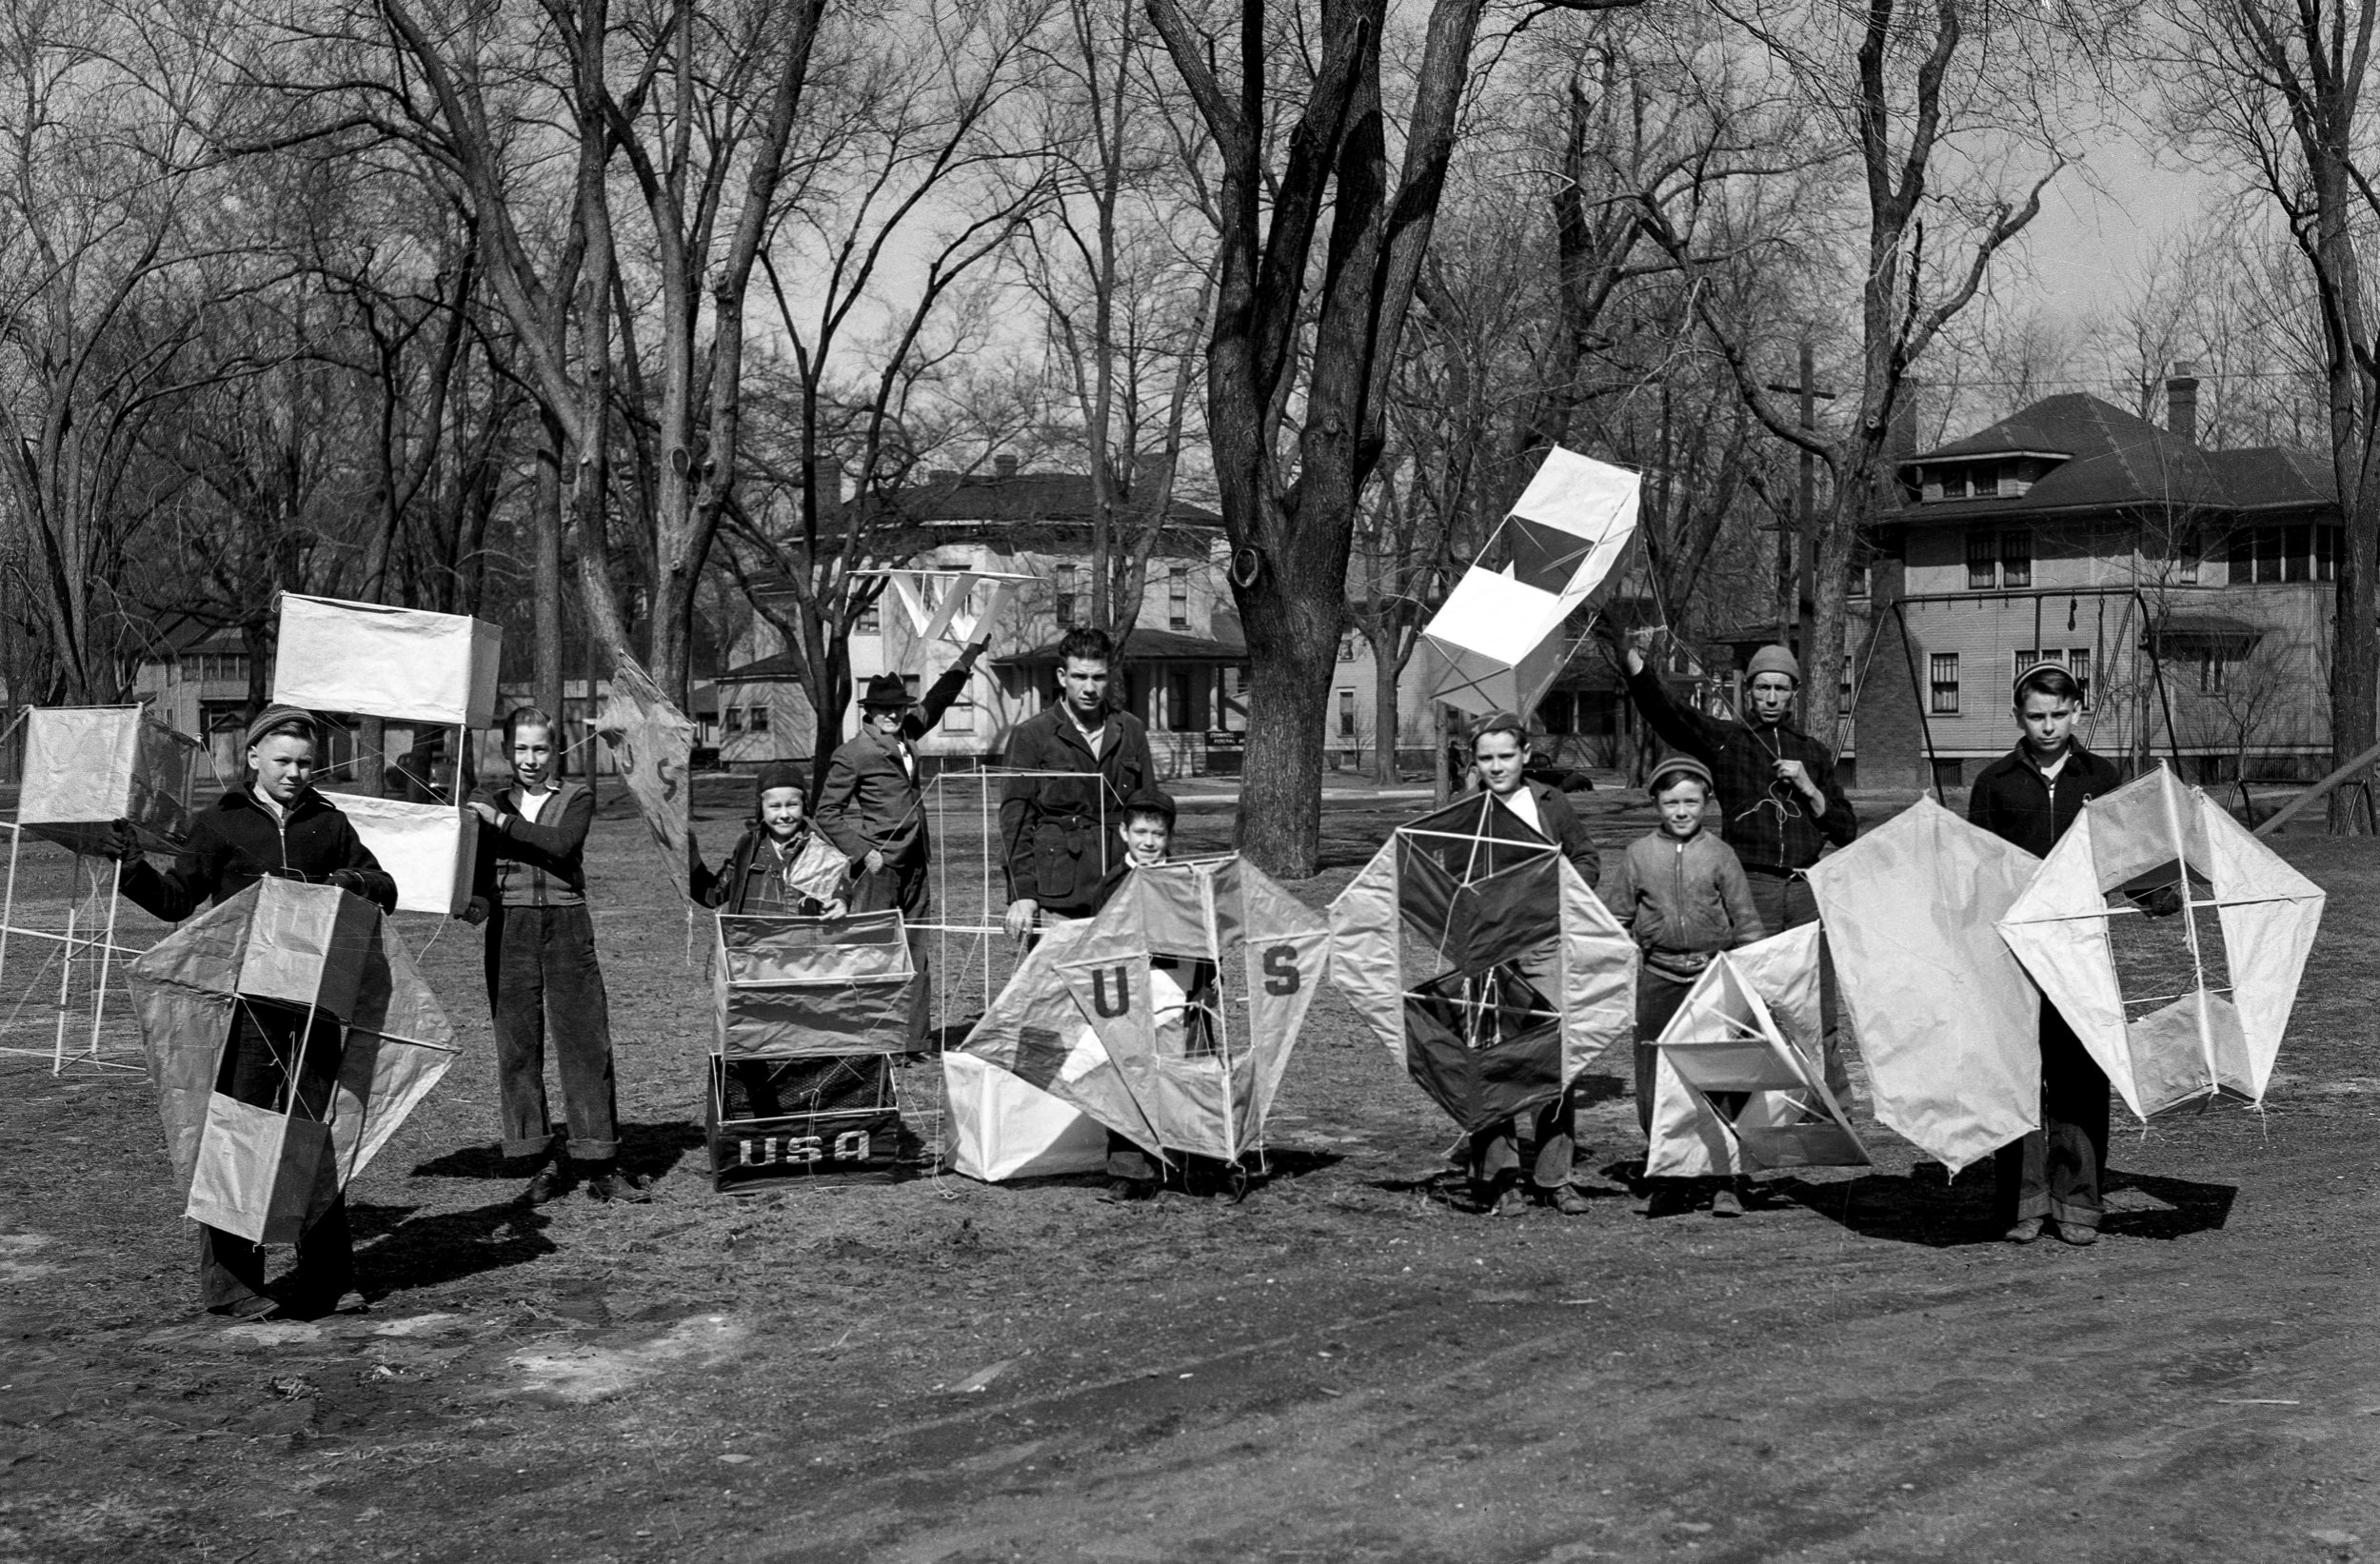 Children's Home, children with kites, March 18, 1939. File/The State Journal-RegisterPublished as Picturing the Past March 25, 2018It�s said that two Chinese philosophers in the 5th-century BC are credited with inventing kites, so it�s quite a testament to their enduring appeal that the recreation department of the Springfield Children�s Home chose kite making as an activity in March of 1939. Children who participated in the exercise were photographed with their creations, and according to The Illinois State Journal, were arranging for test flights for each classification. File/The State Journal-Register